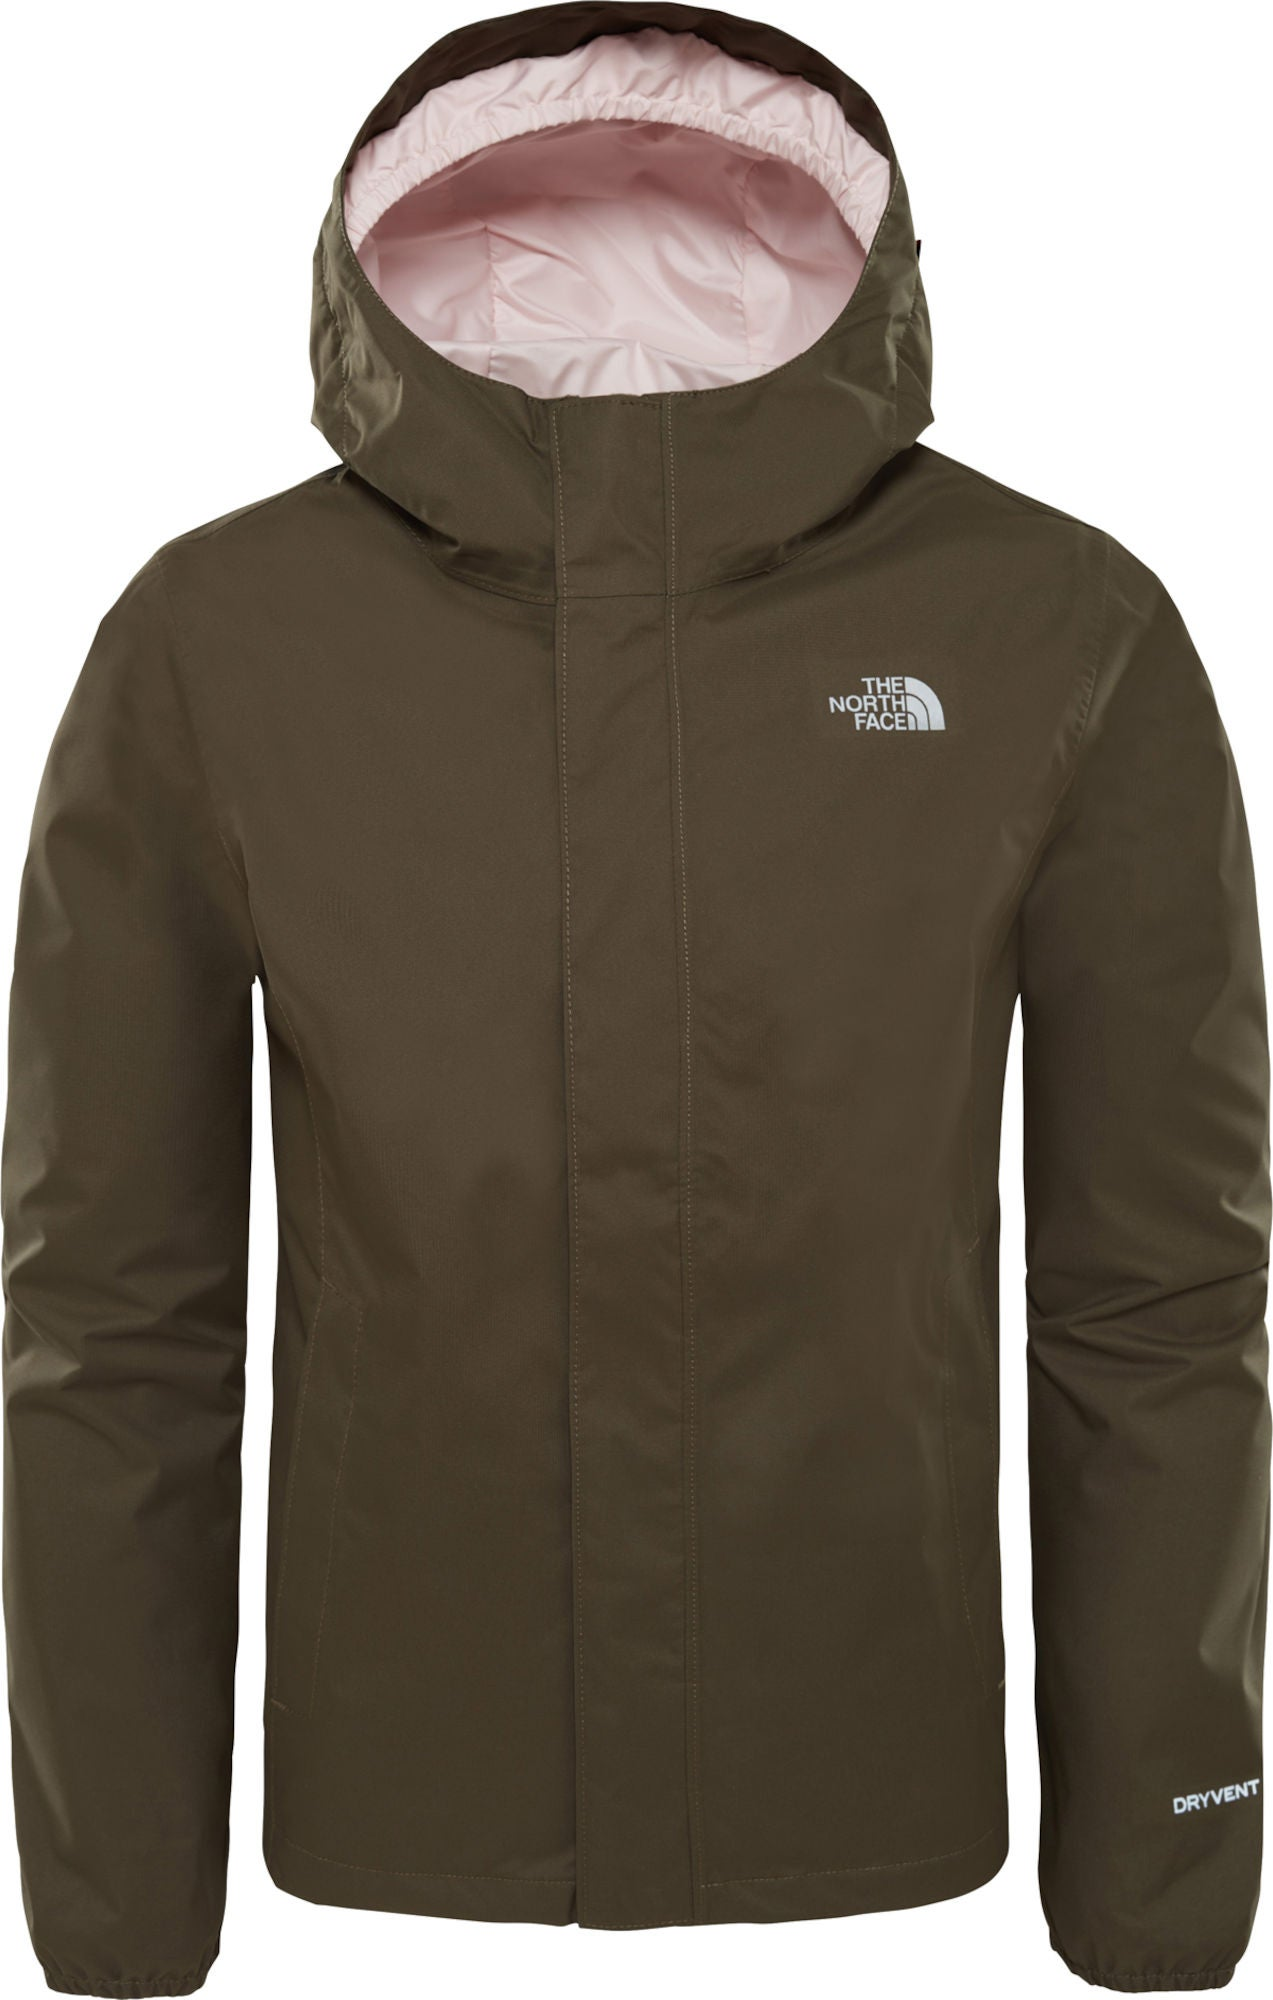 The North Face Resolve Reflective Jacka Barn, New Taupe Green S